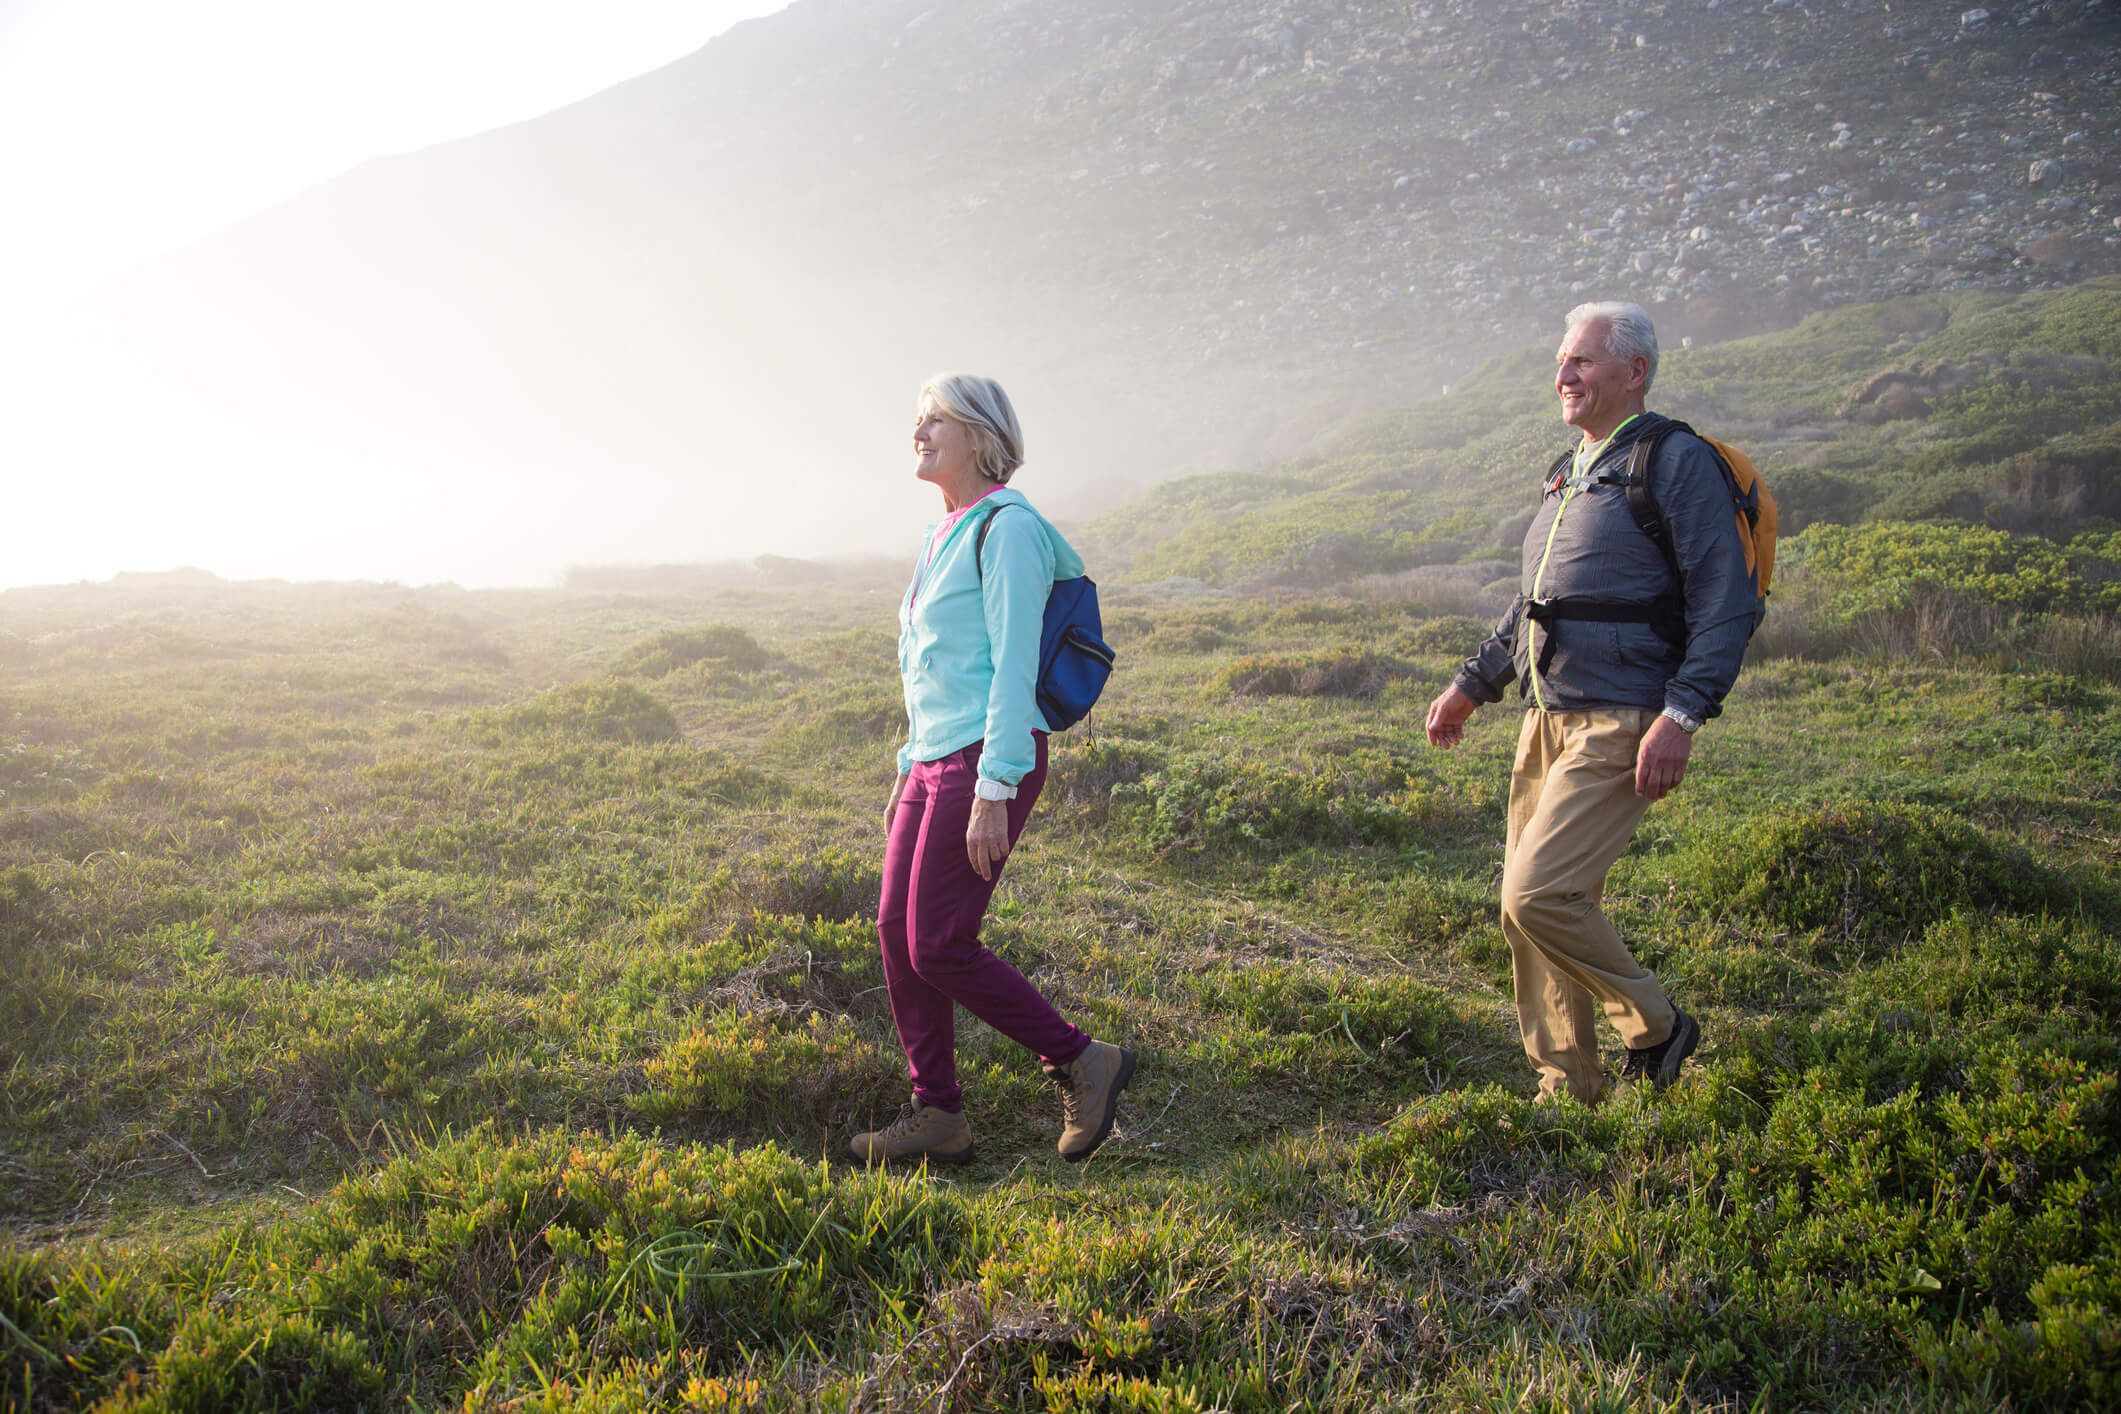 Basic Rules of Thumb for a Happy Retirement